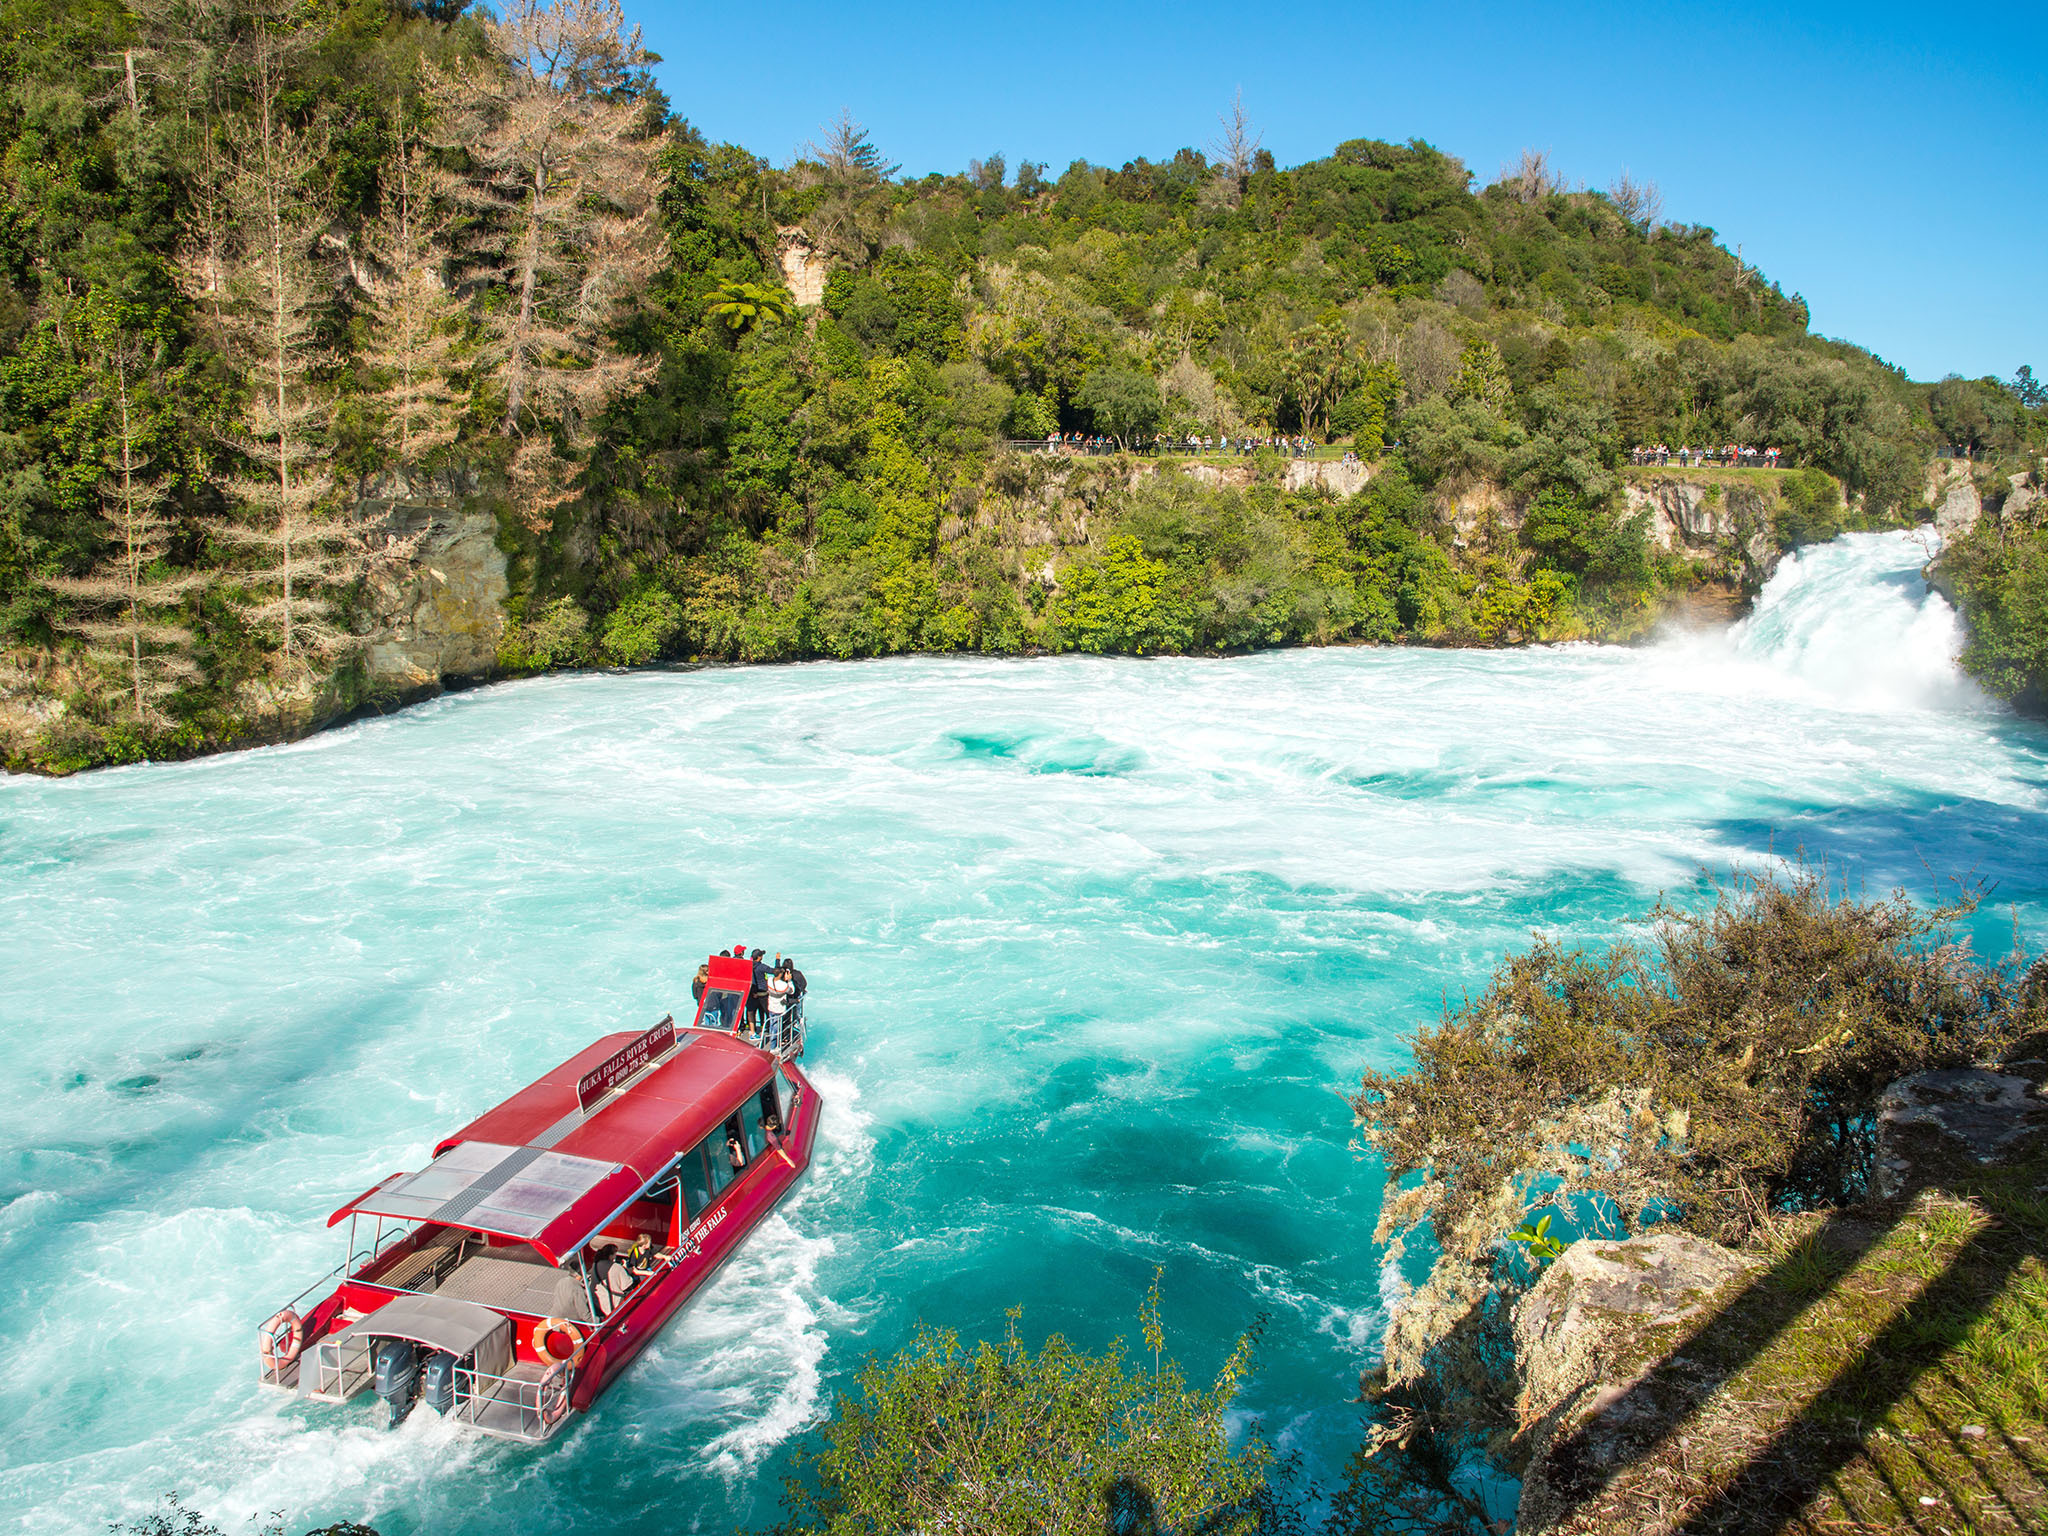 The 9 best things to do in Taupo